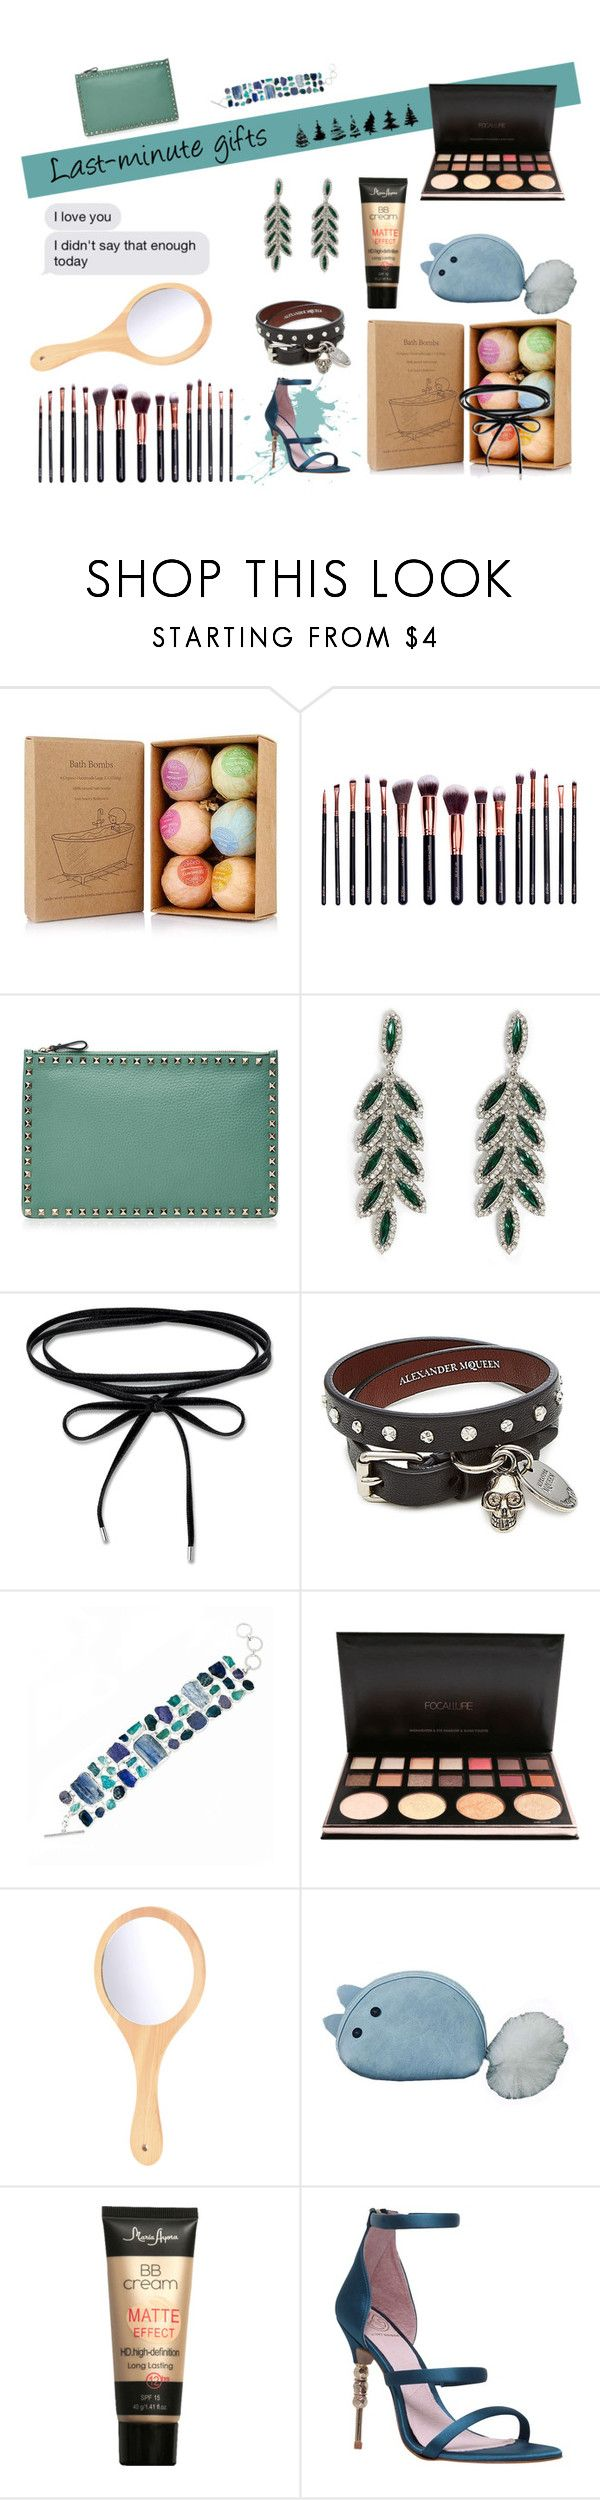 """""""Gamiss"""" by annab-poe ❤ liked on Polyvore featuring M.O.T.D Cosmetics, Valentino, Forever 21, Alexander McQueen, Poppy Jewellery, KG Kurt Geiger, contest, gifts and gamiss"""